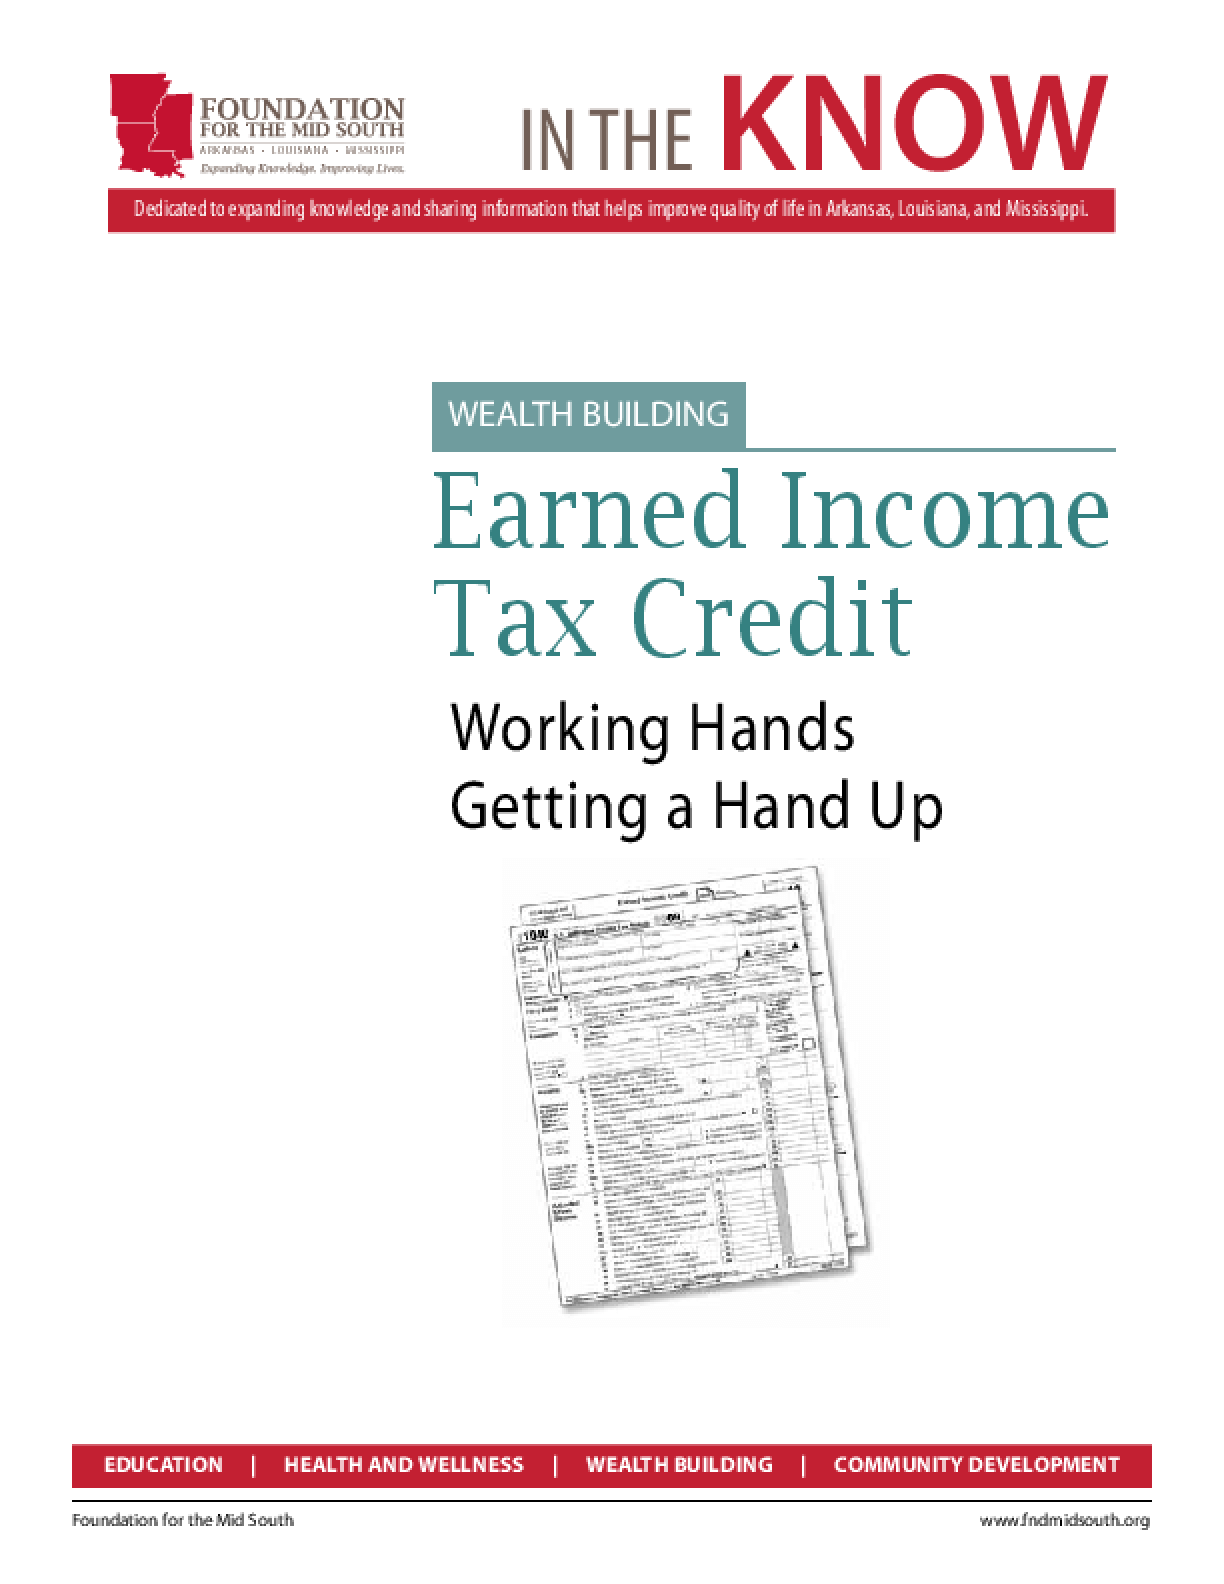 Earned Income Tax Credit: Working Hands Getting a Hand Up